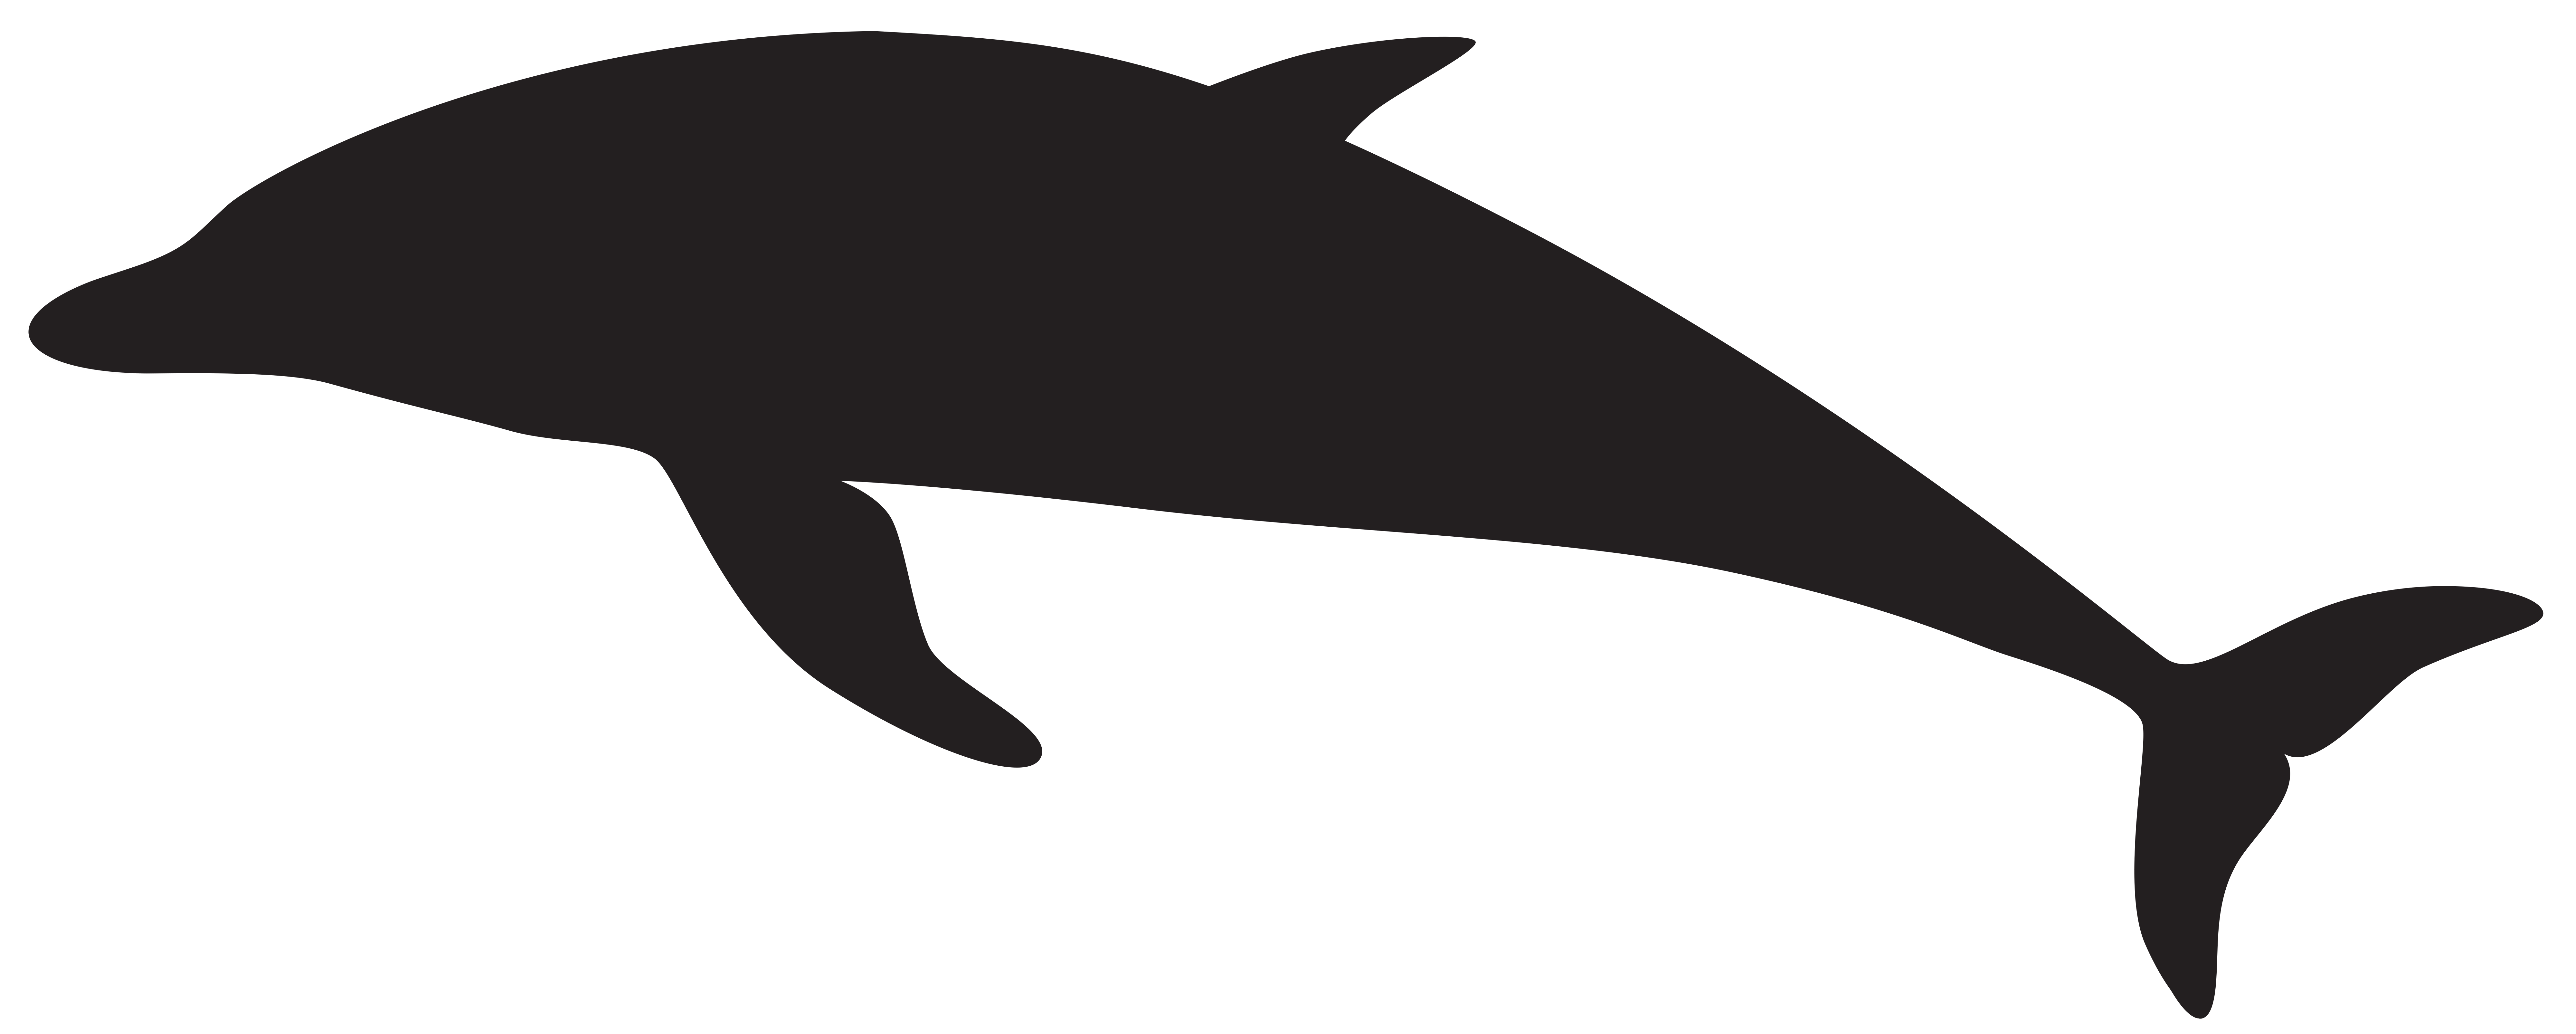 Free Dolphin Silhouettes, Download Free Clip Art, Free Clip.